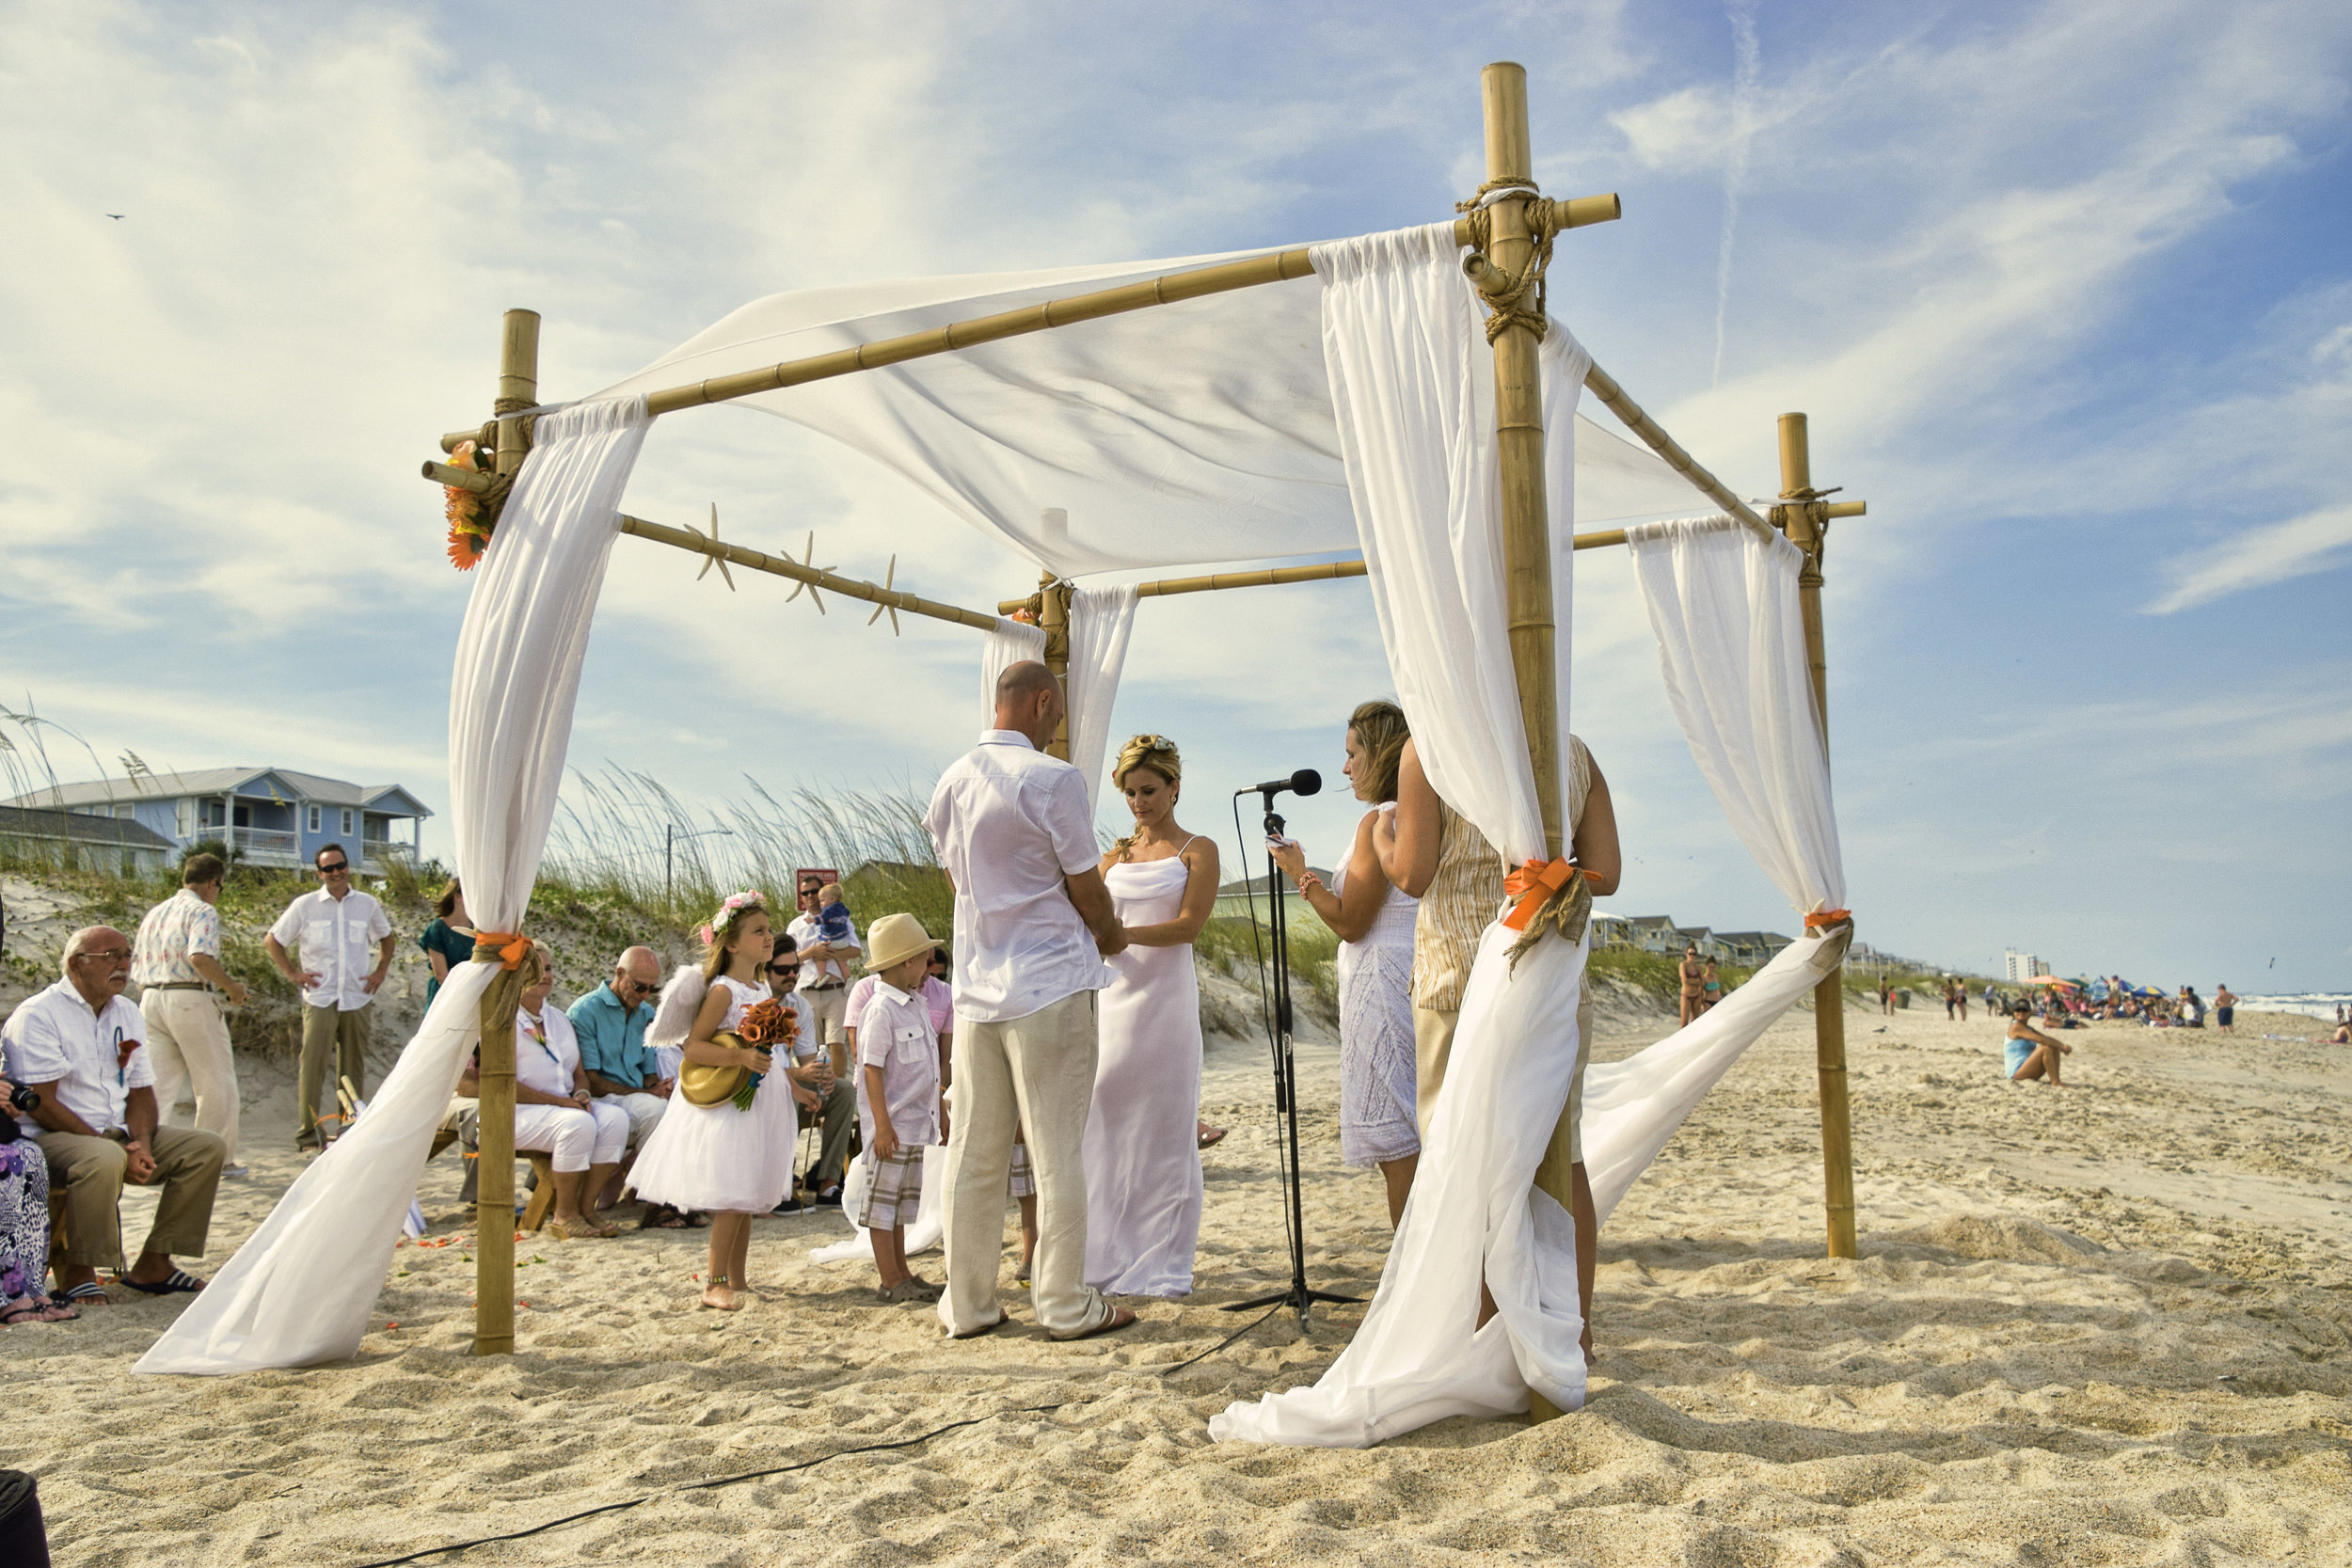 - Kure Beach Weddings. Click on image to open.